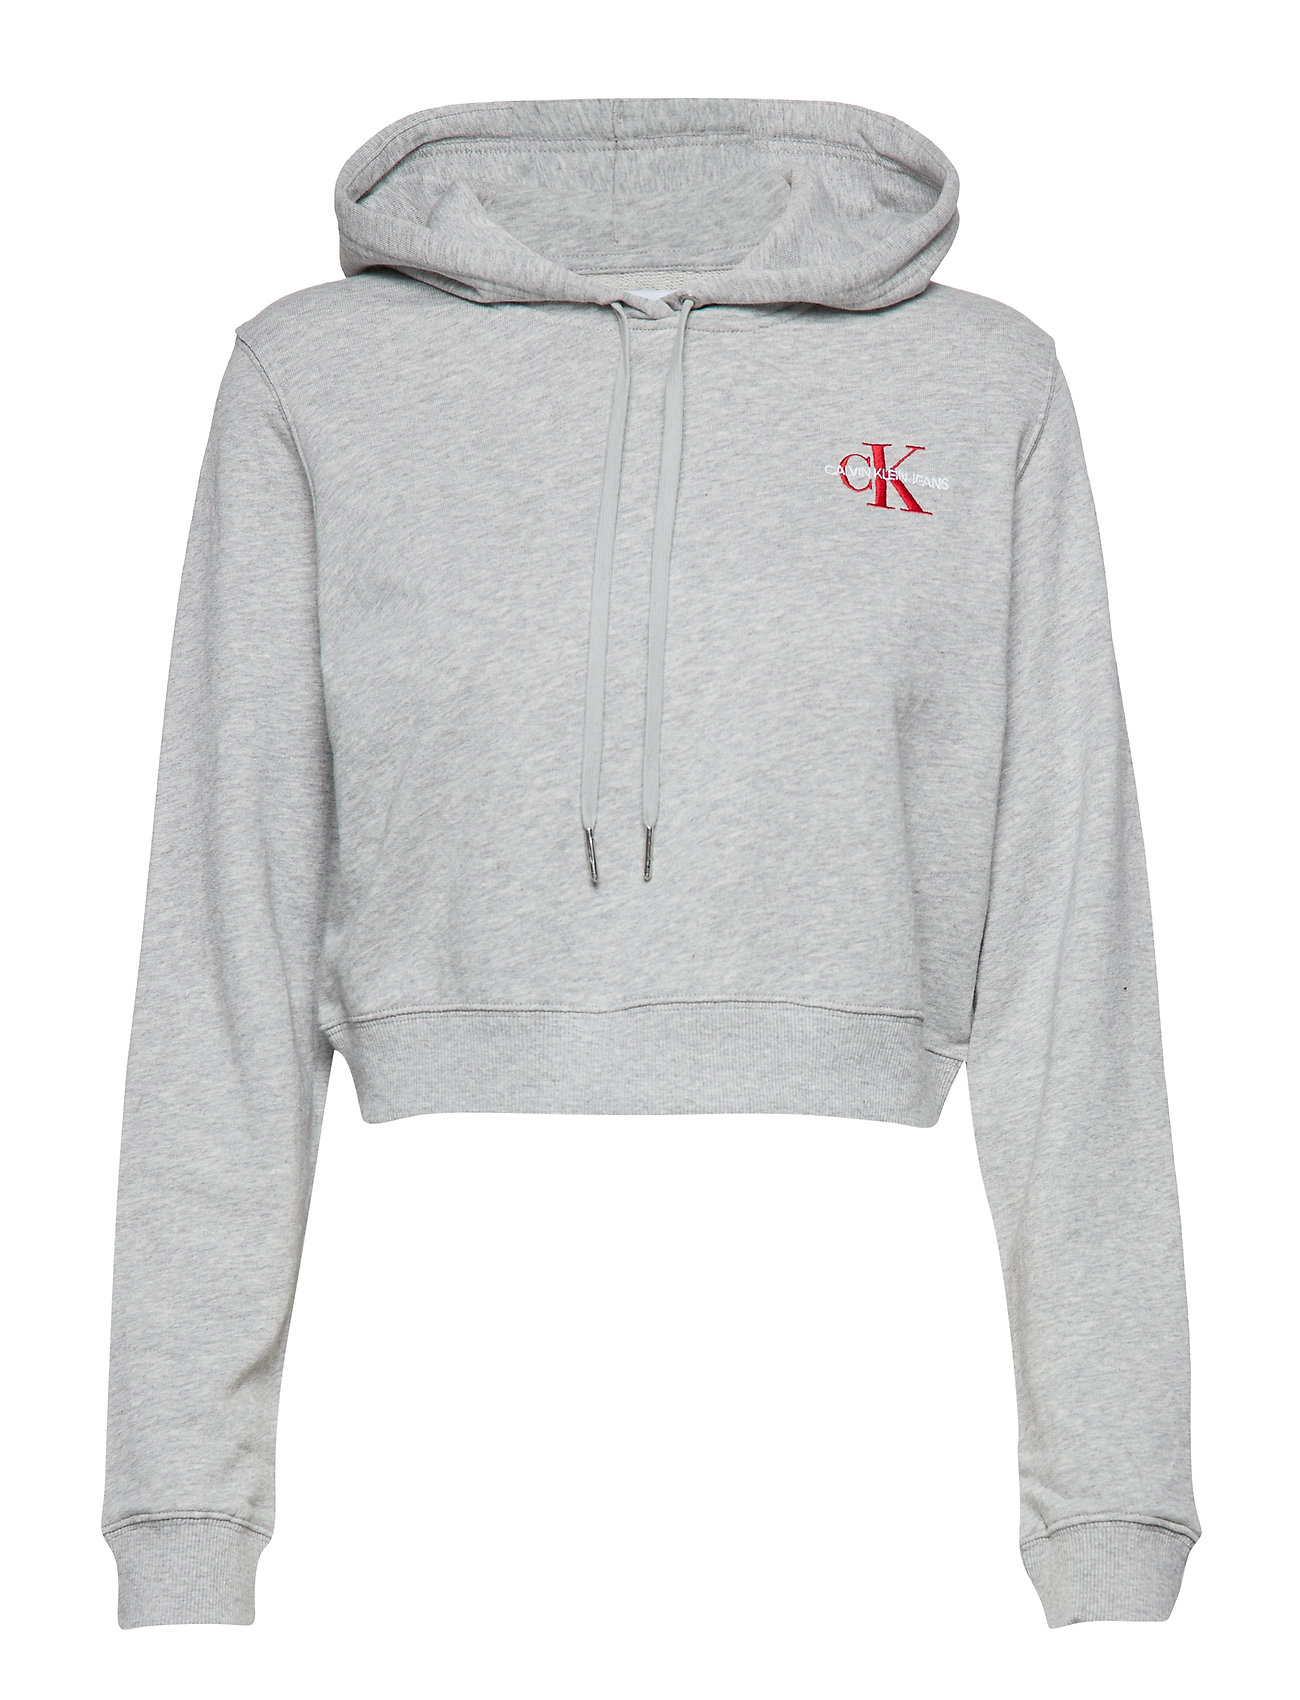 Calvin Klein Jeans MONOGRAM EMBROIDERY - LIGHT GREY HEATHER/BARBADOS CH